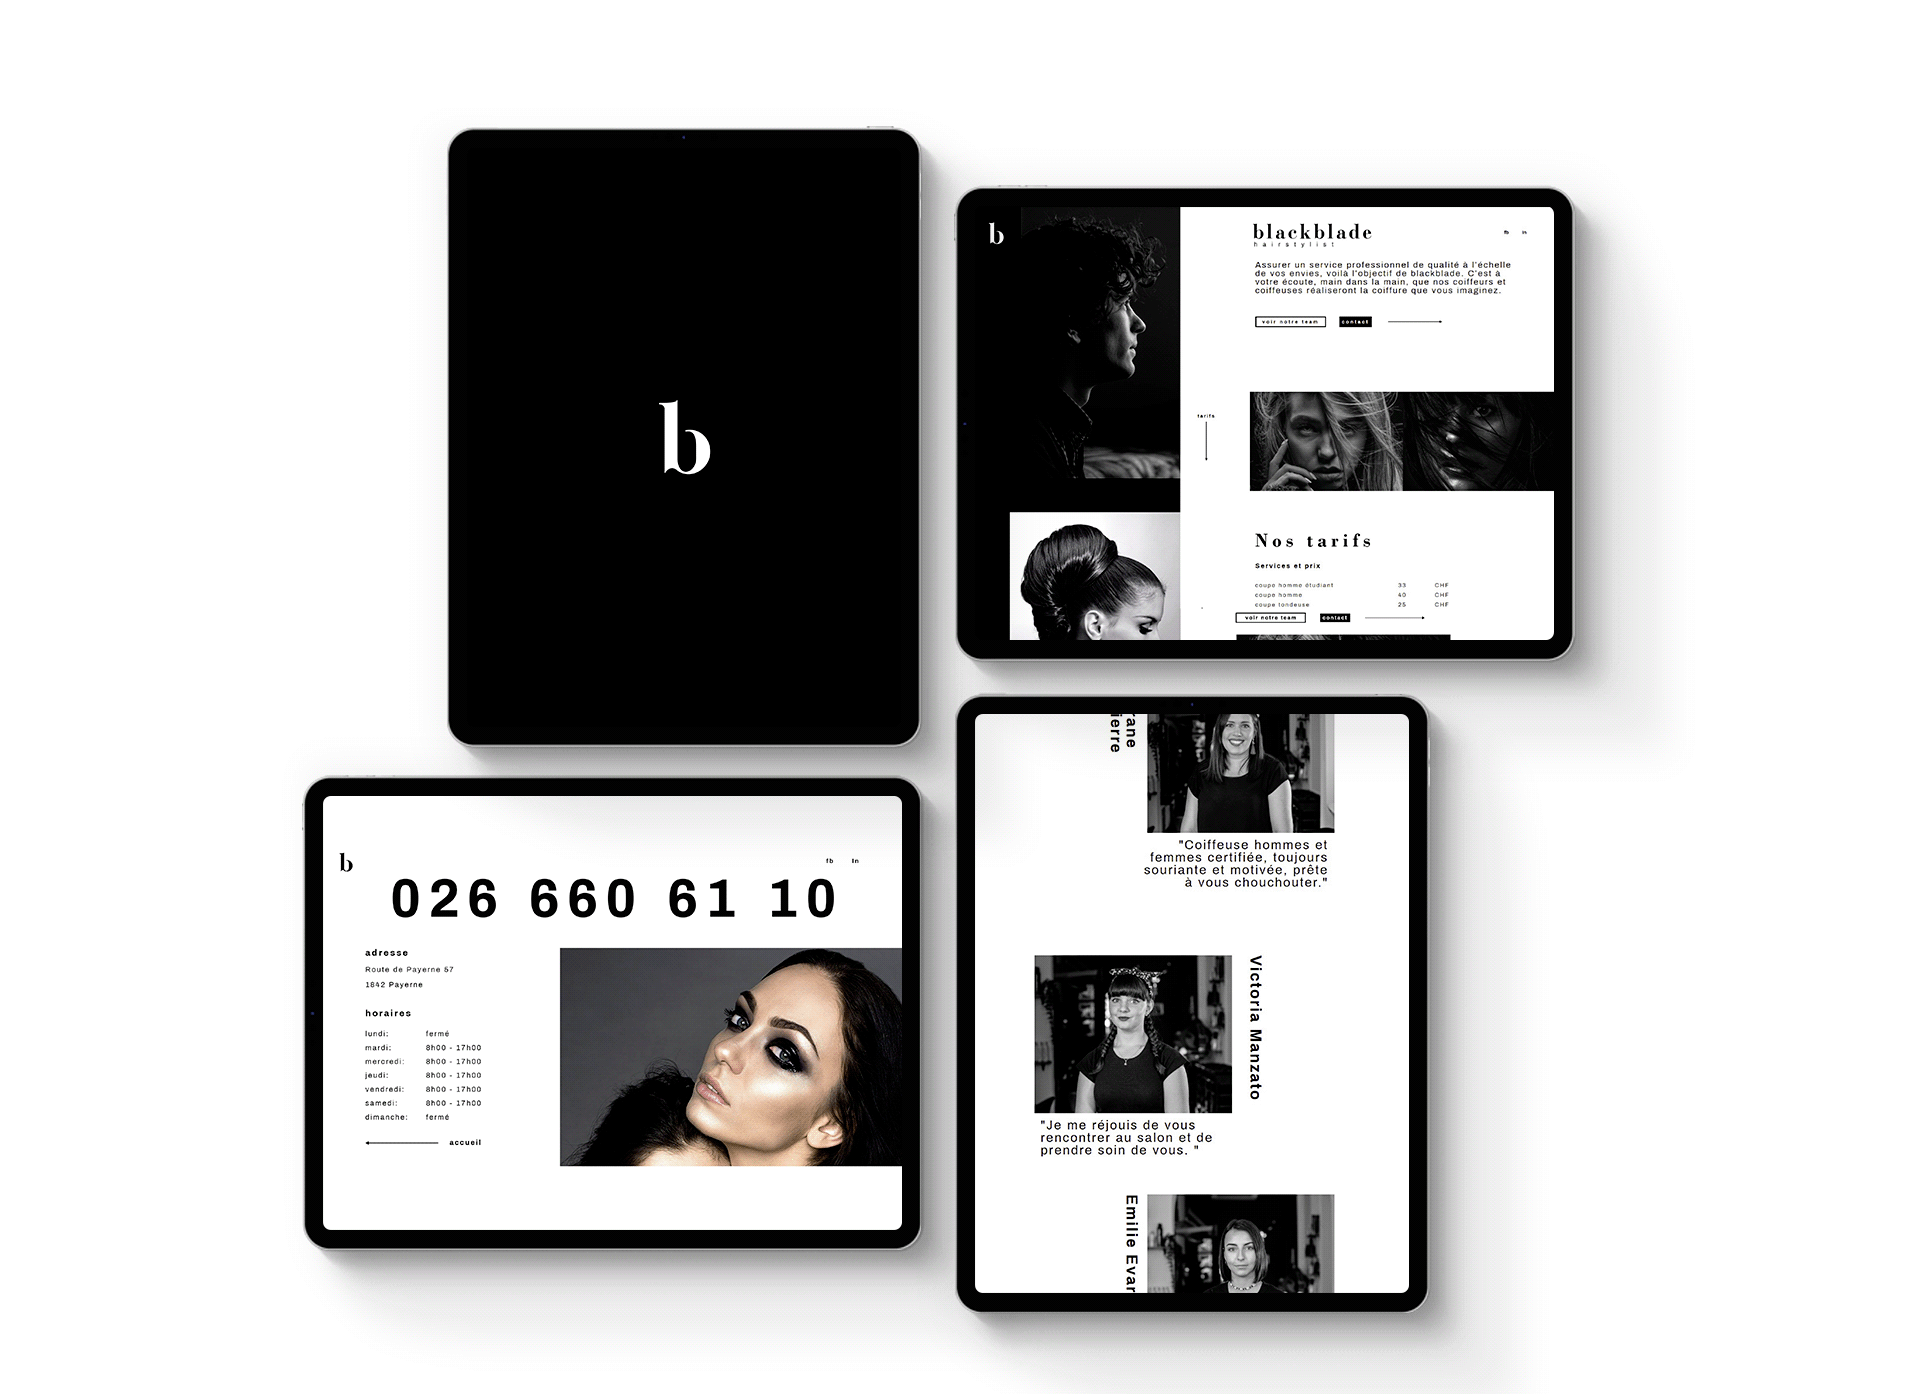 Design Agency Create Blackblade Hairstylist New Branding